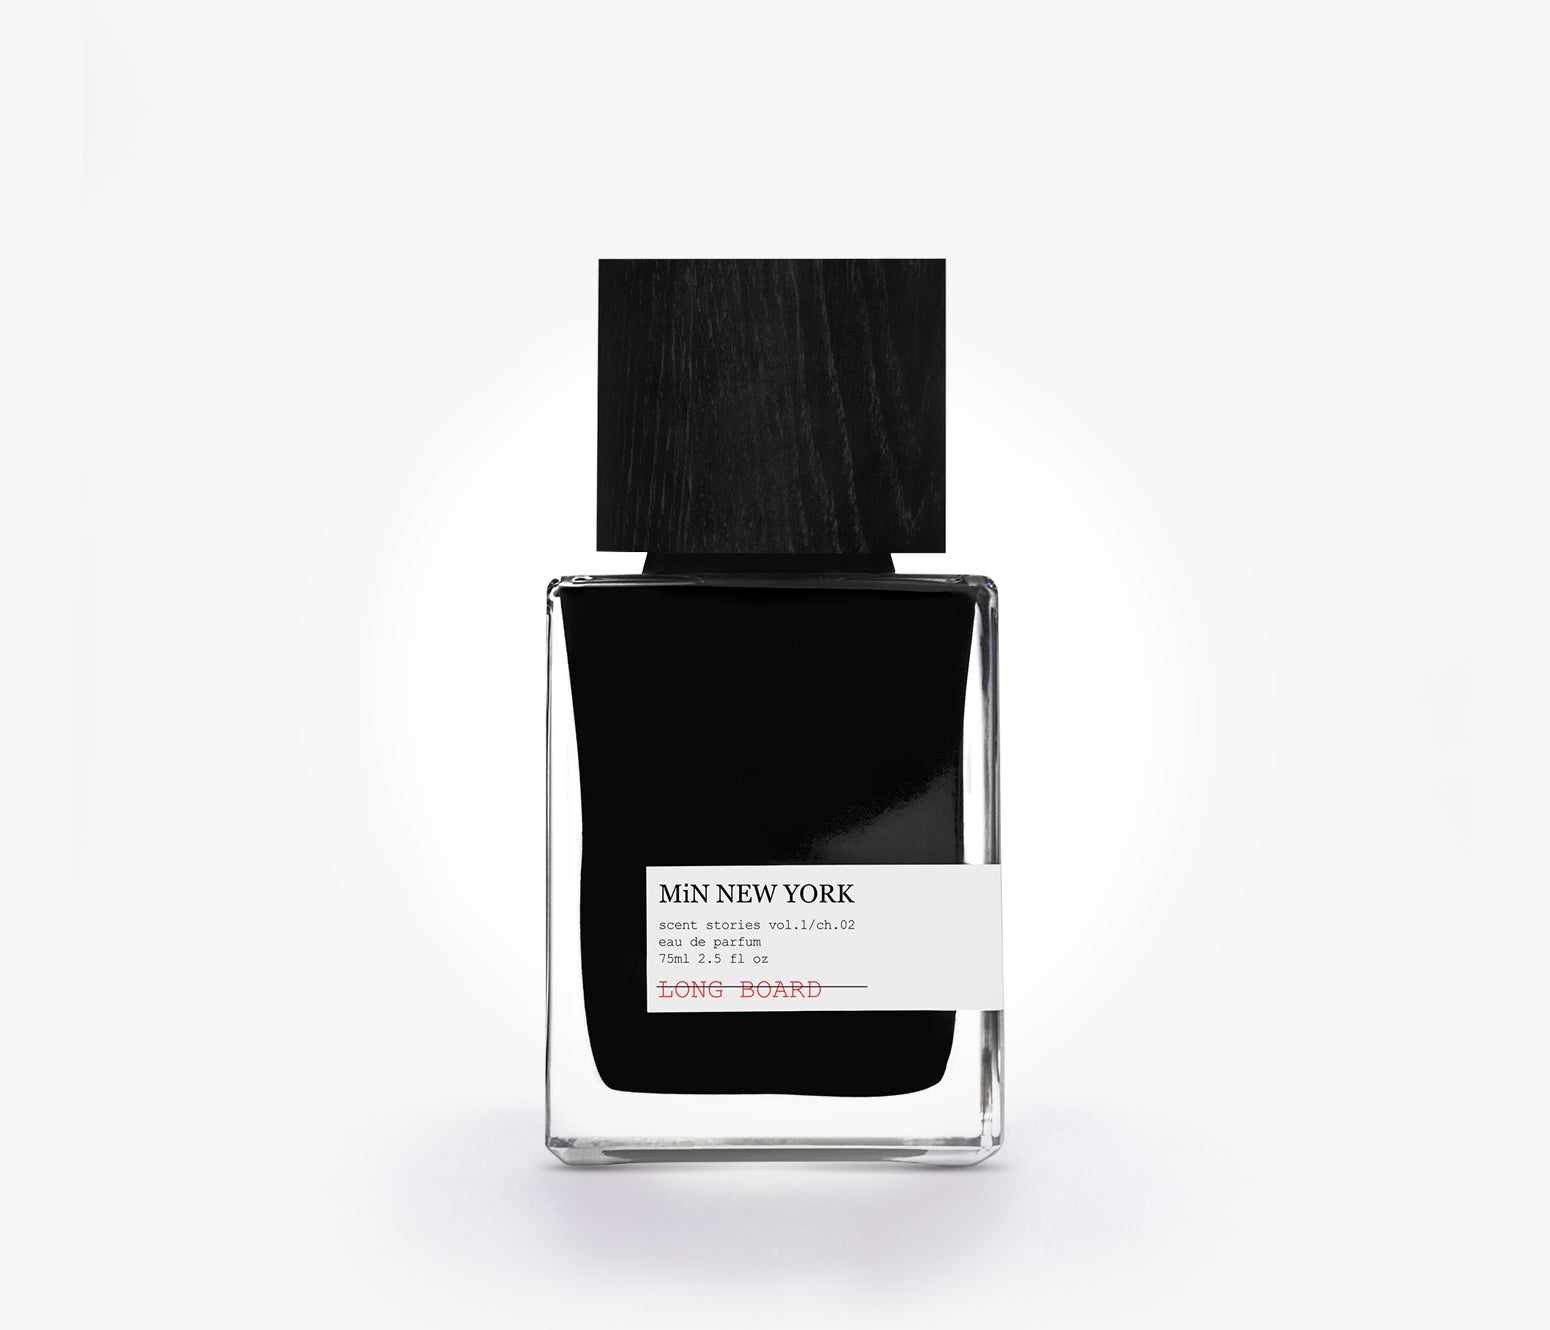 MiN New York - Long Board - 75ml - XDT5815 - Product Image - Fragrance - Les Senteurs